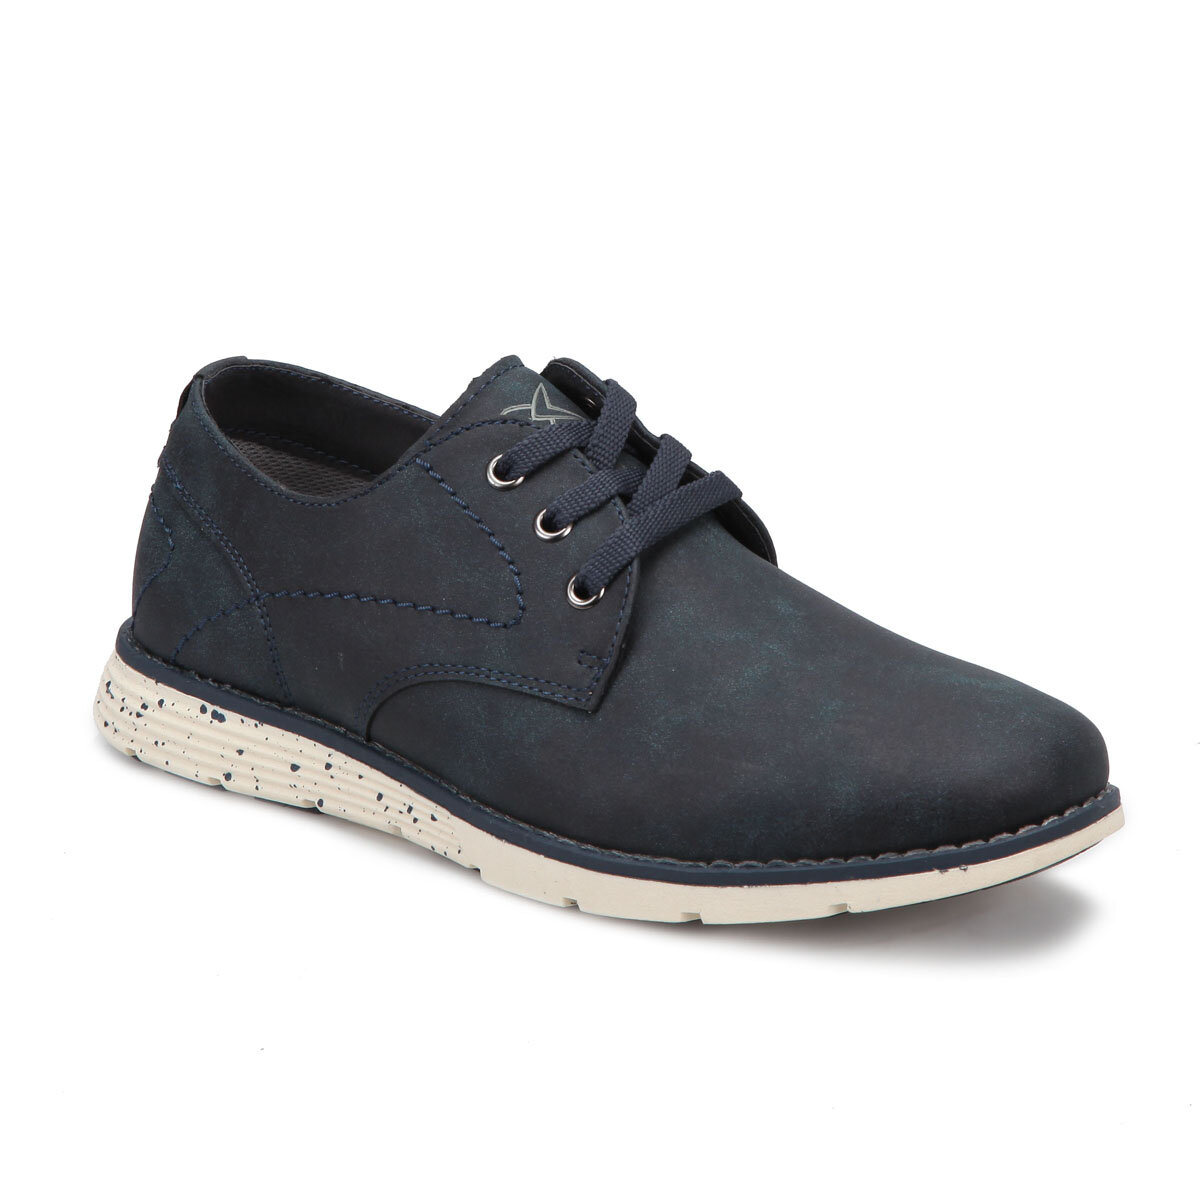 FLO LİZBON Navy Blue Men Casual Shoes KINETIX